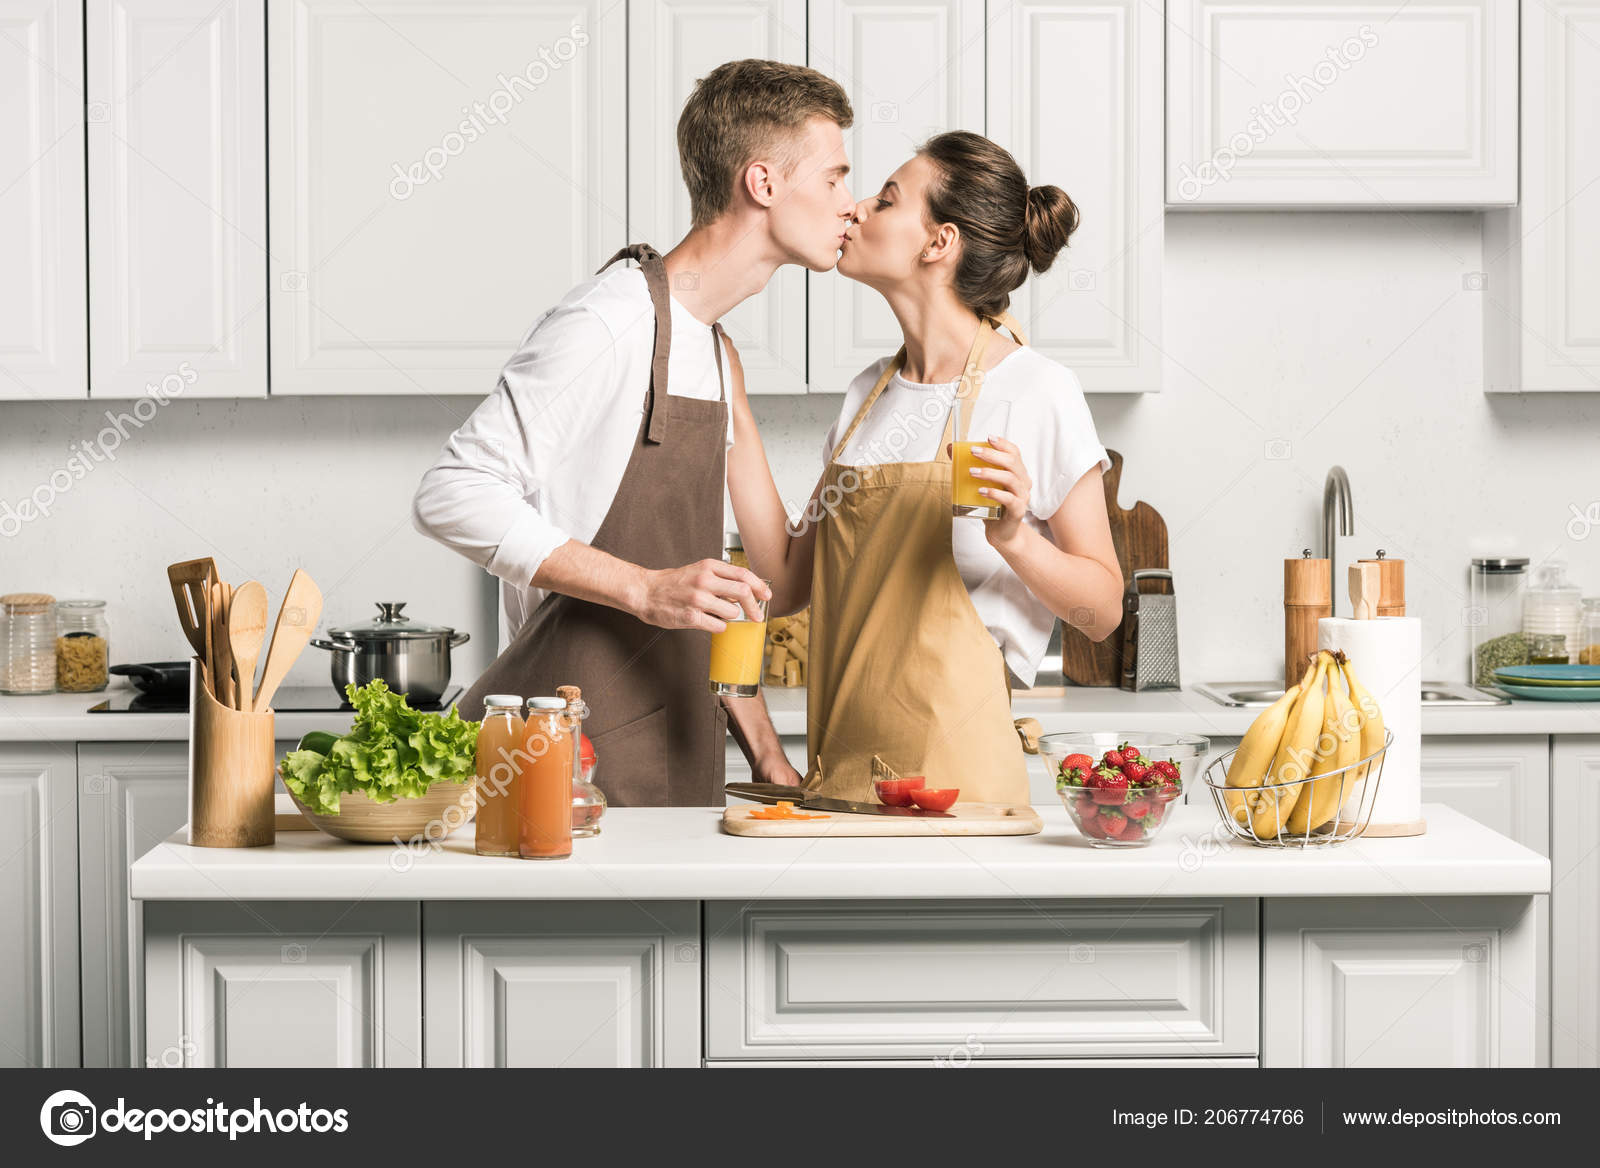 Young Couple Kissing While Cooking Salad Kitchen Stock Photo Image By C Edzbarzhyvetsky 206774766